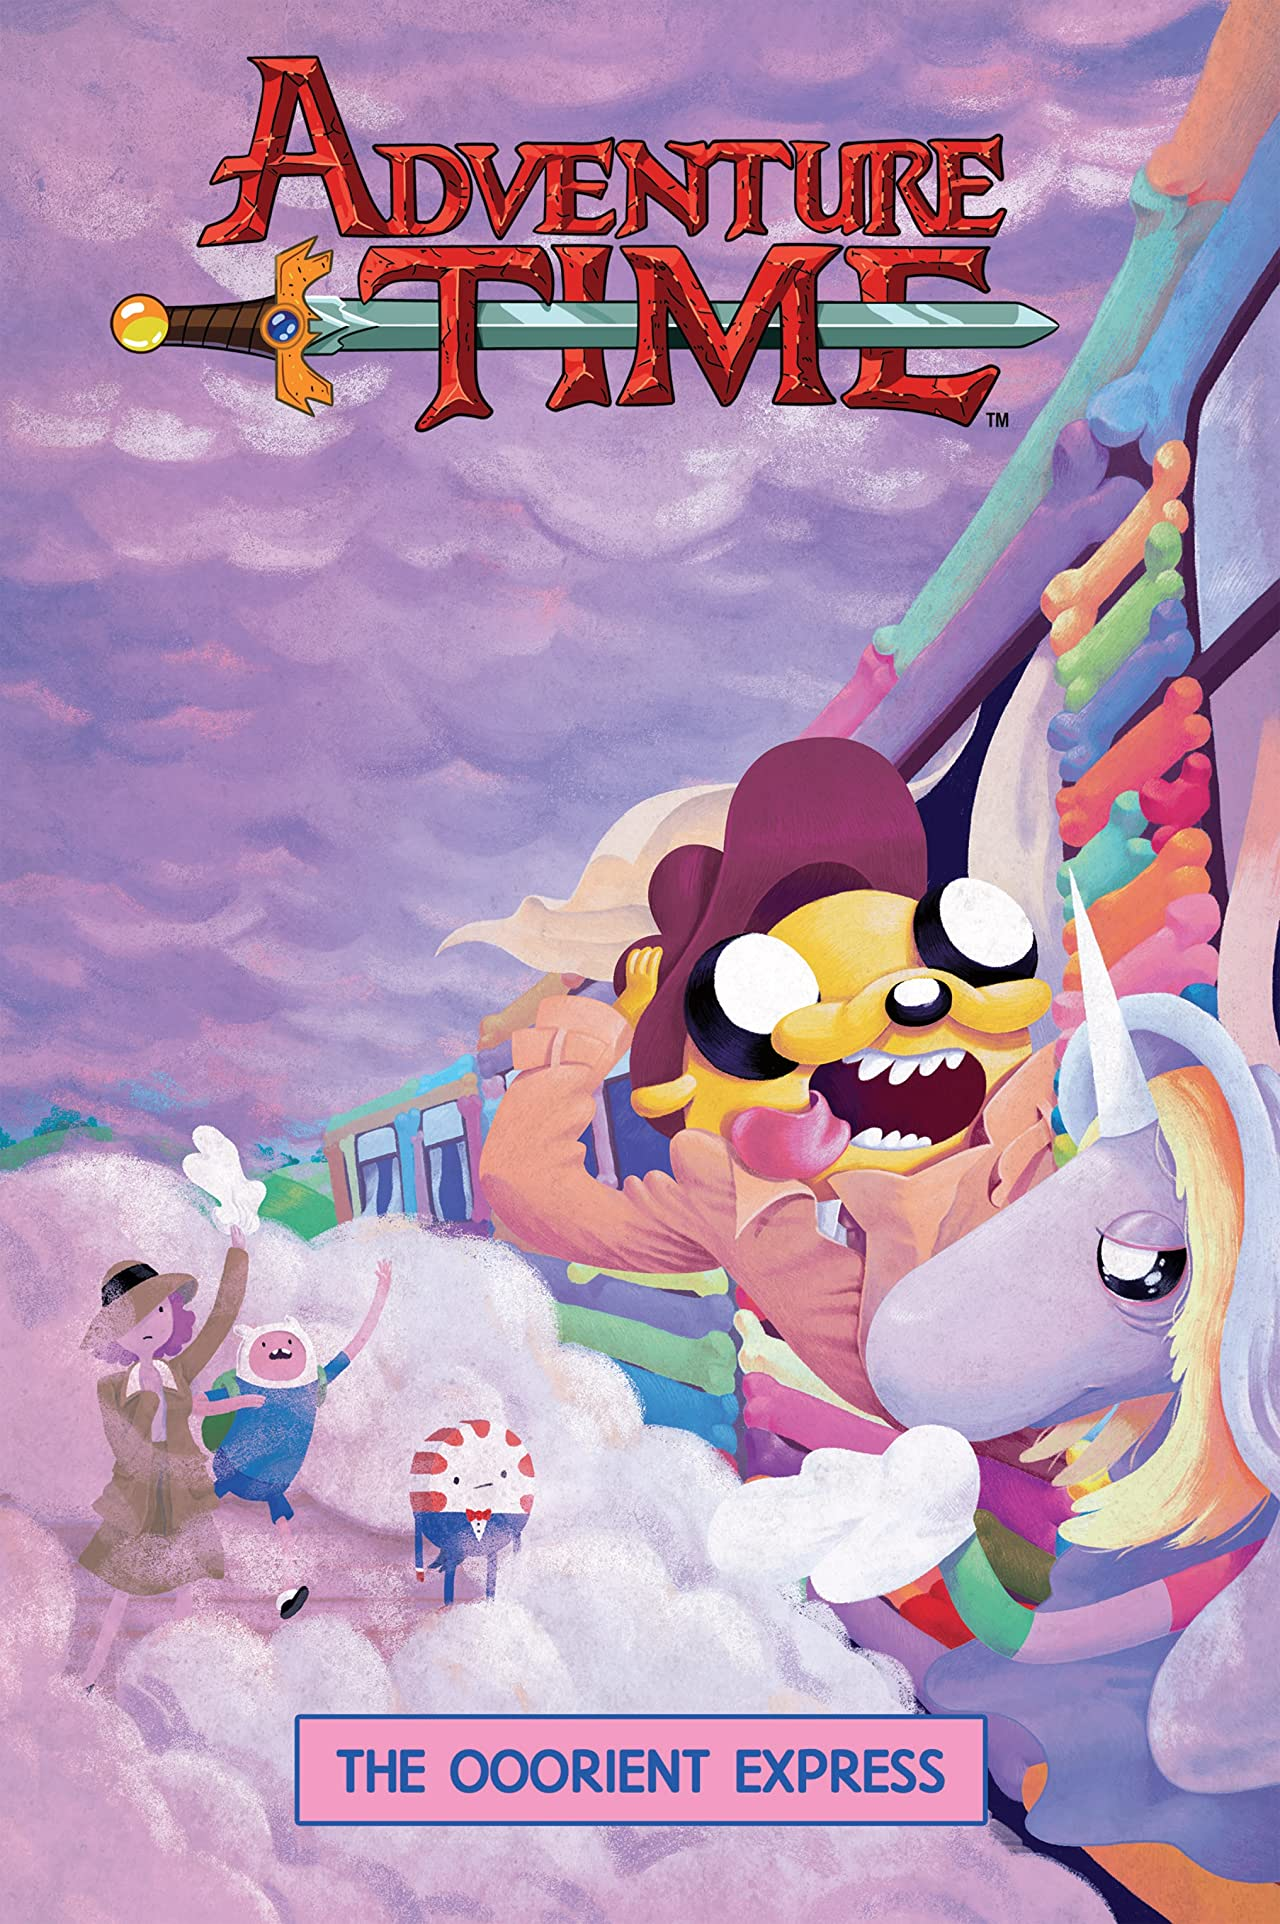 Adventure Time Vol. 10: The Ooorient Express